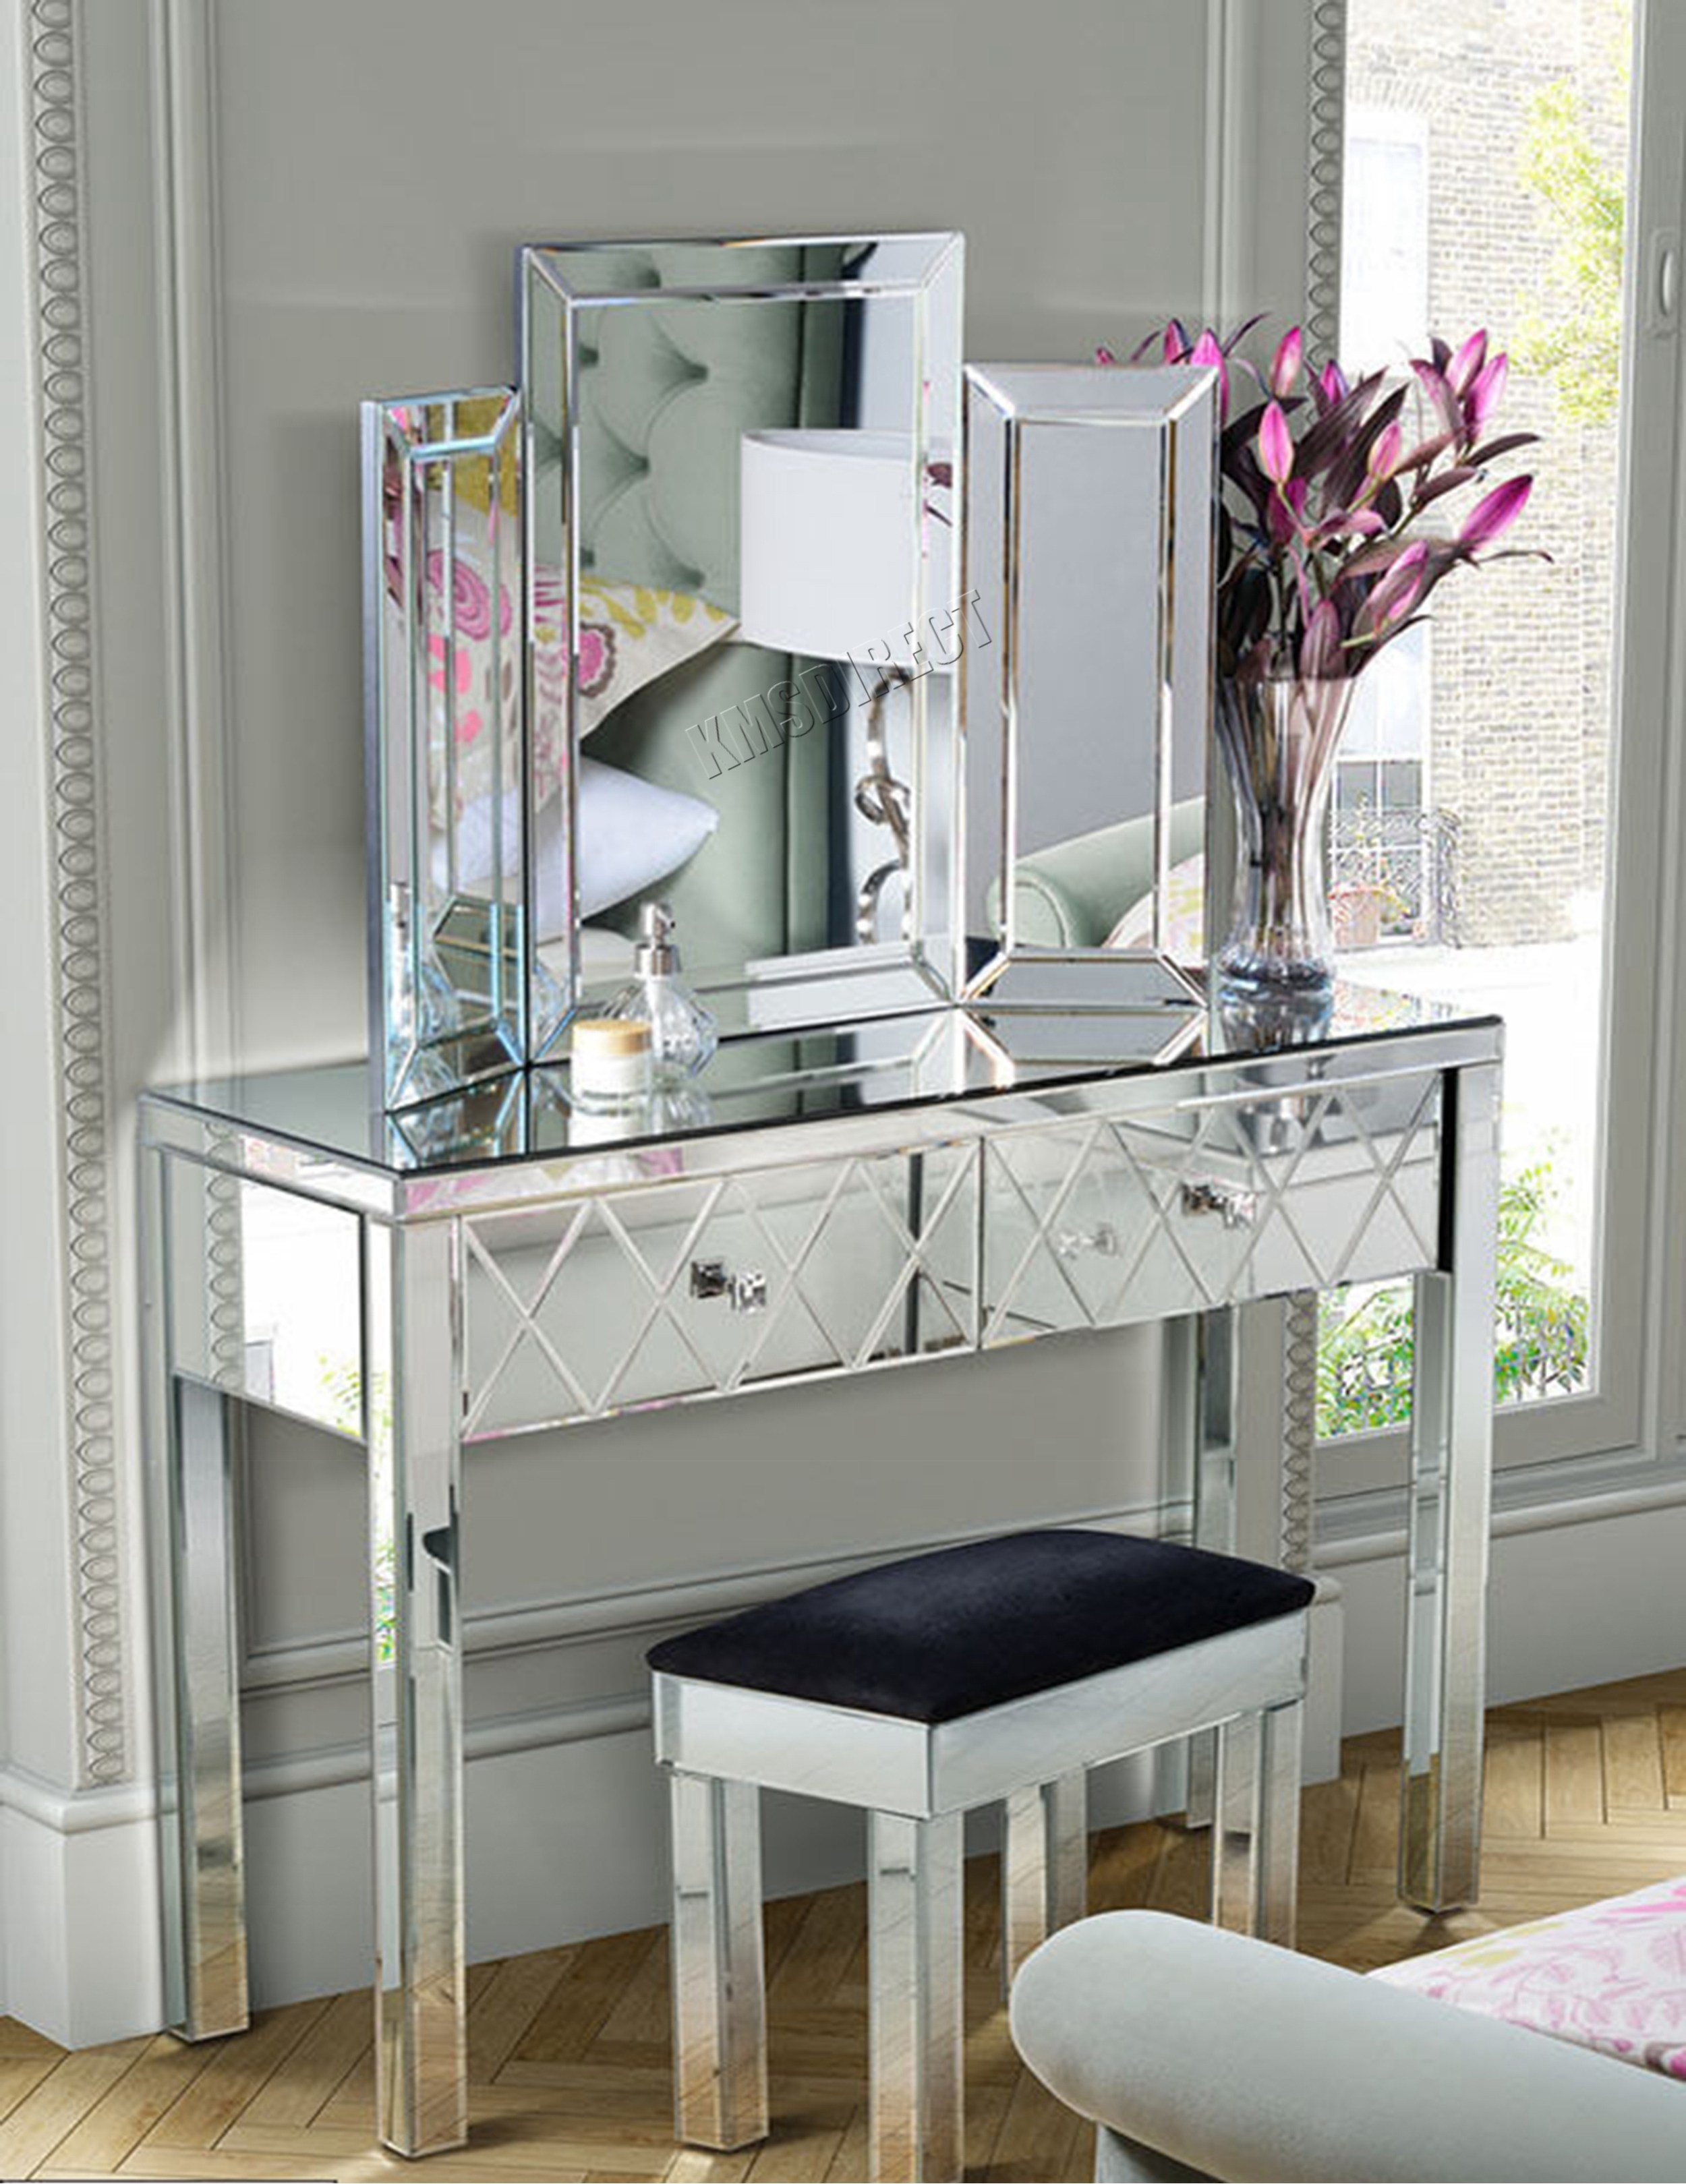 Best Westwood Mirrored Furniture Glass Dressing Table With With Pictures